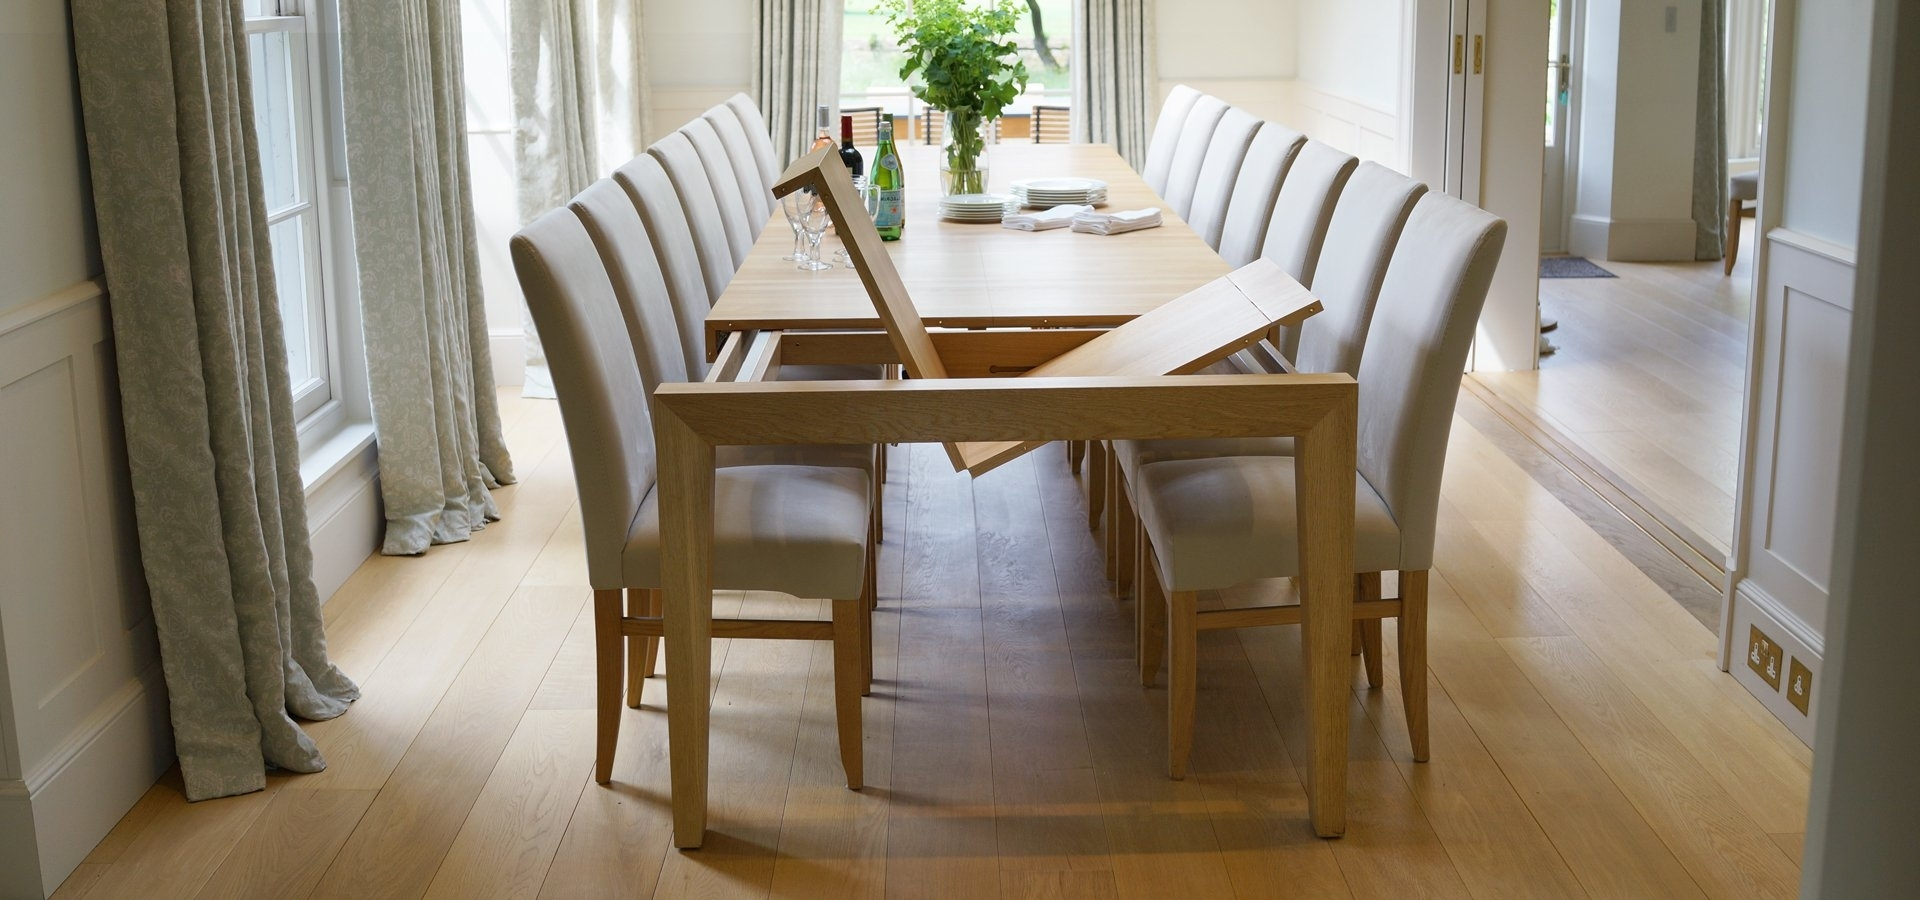 Extendable Dining Tables And Chairs with regard to Well-liked Contemporary Dining Tables & Furnitureberrydesign. Bespoke /custom